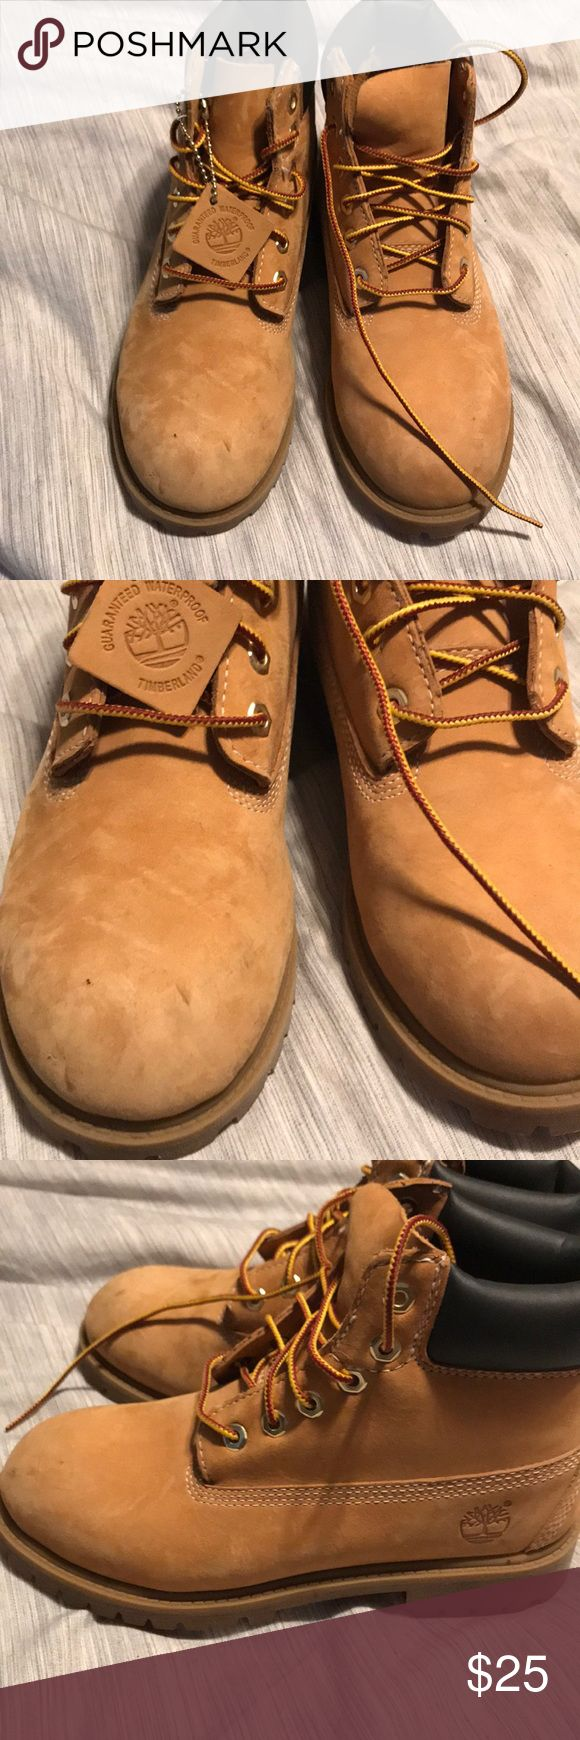 Youth Timberland Boots Classic water proof timbs! Worn once! Timberland Shoes